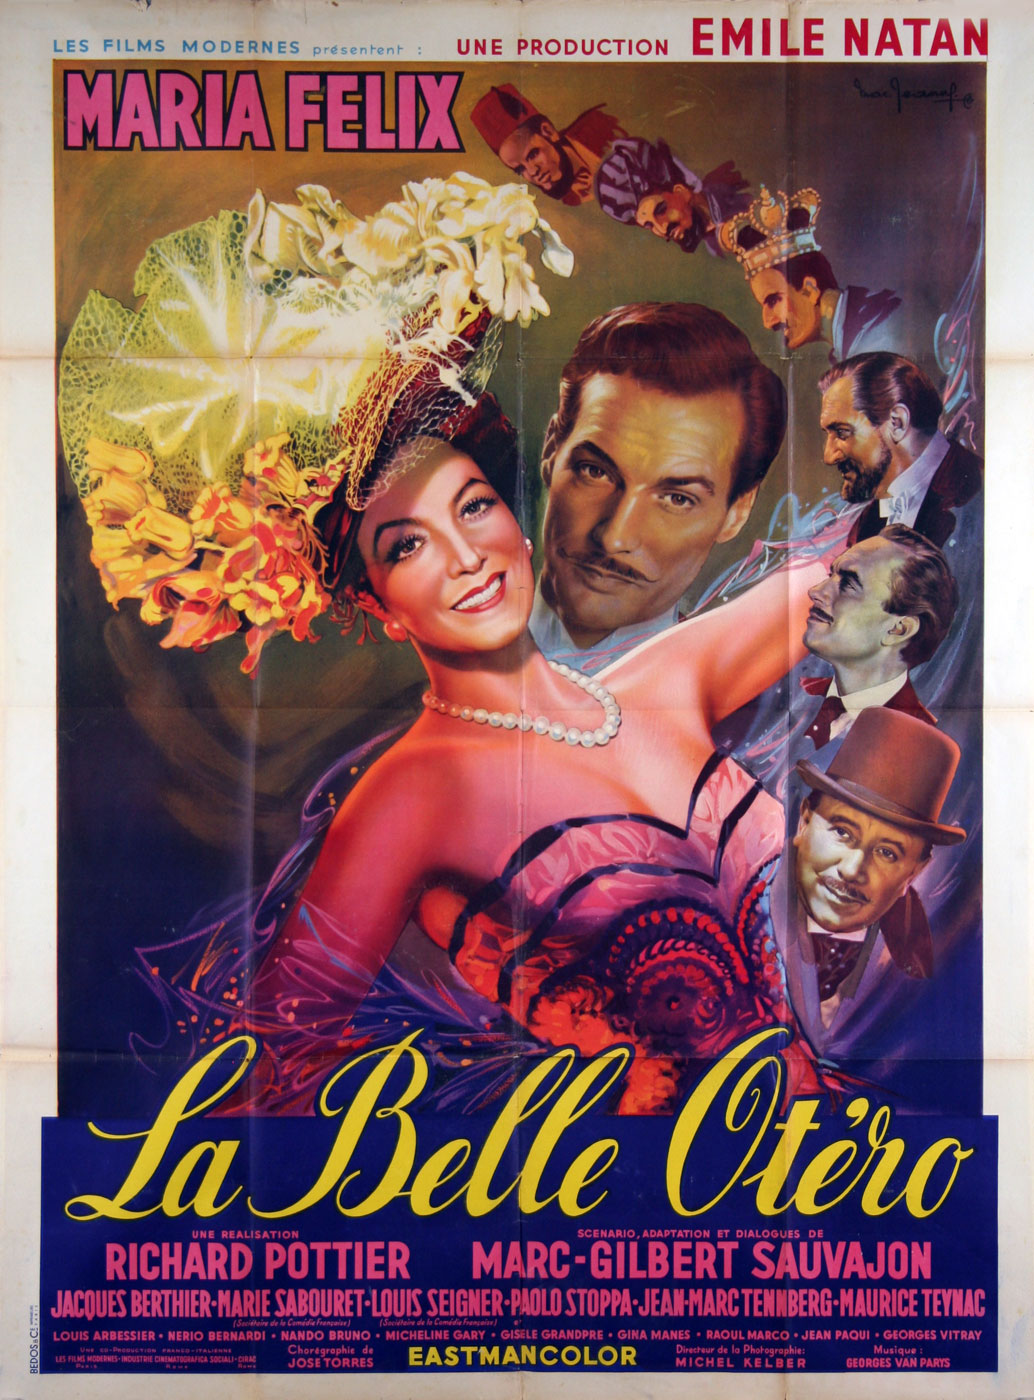 Belle Otero (la) by Richard Pottier